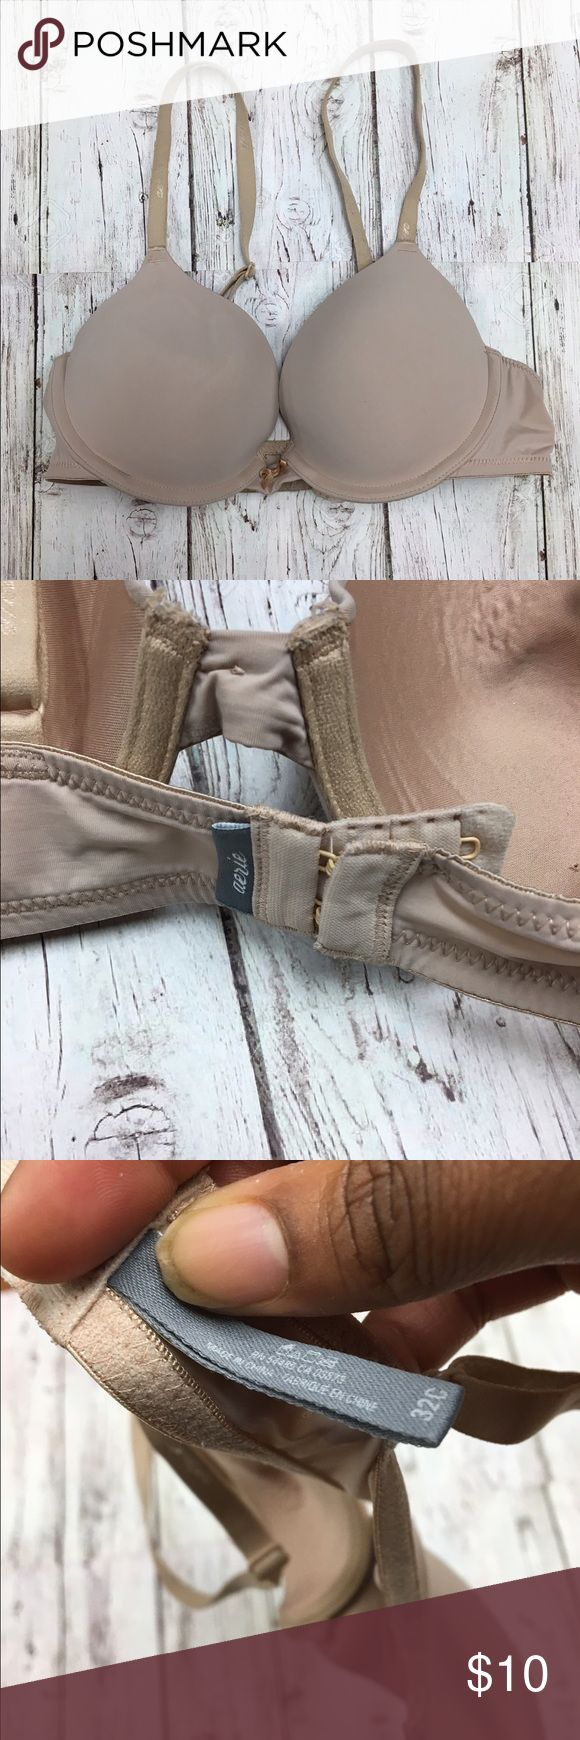 Aerie Bra 32C slight push up Has been worn about 3 times. This bra is in a great condition! You will receive Bra washed and ready to wear. Most Aerie bras is $30+ a bra in this style. This is an awesome deal to get a beautiful bra! aerie Intimates & Sleepwear Bras